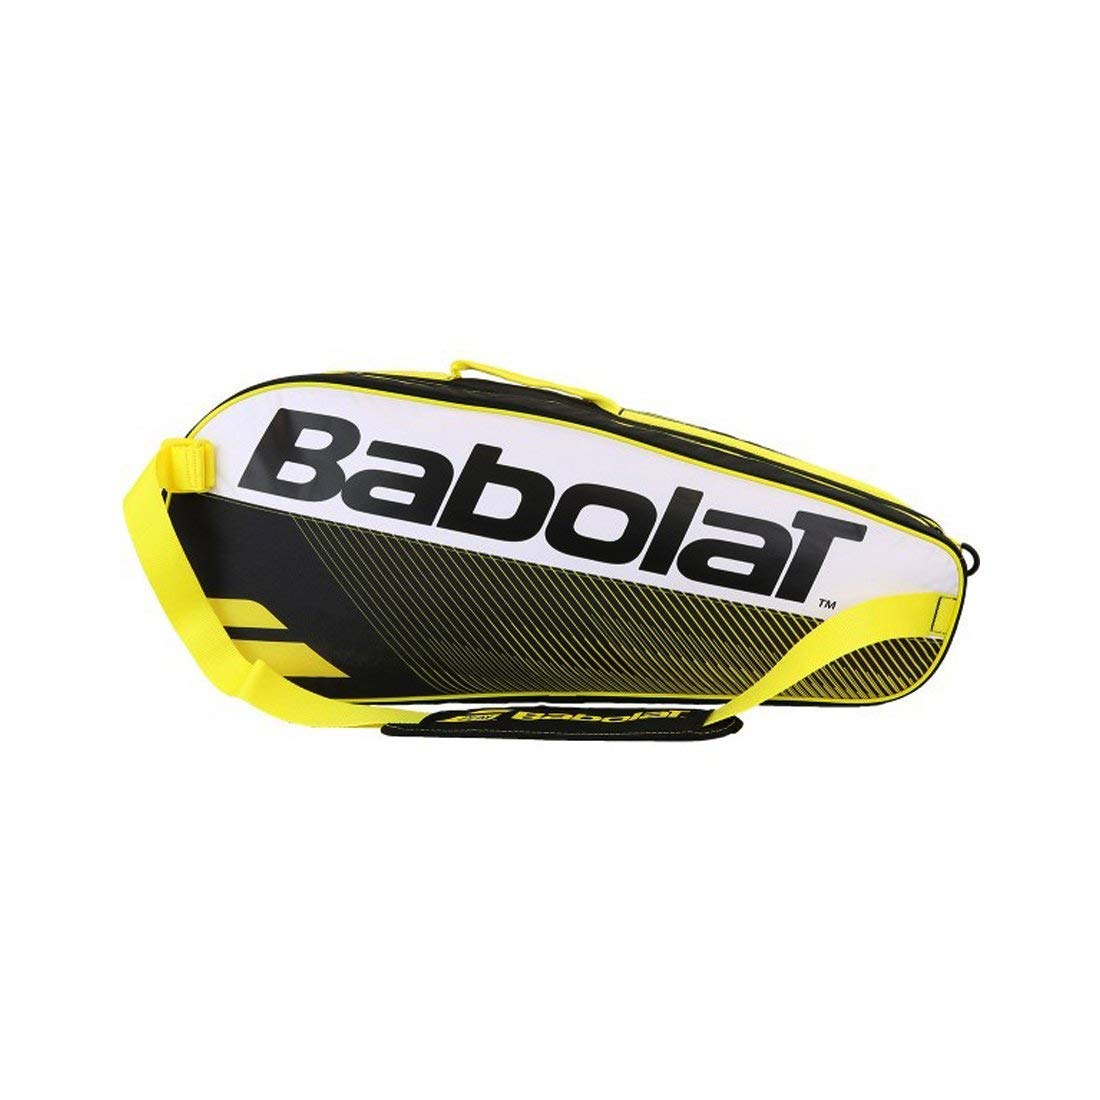 Amazon.com : Babolat Aero Game (Aero G) Tennis Racquet Kit Bundled with a Babolat Club Tennis Bag and 1 Can of 3 Tennis Balls : Sports & Outdoors